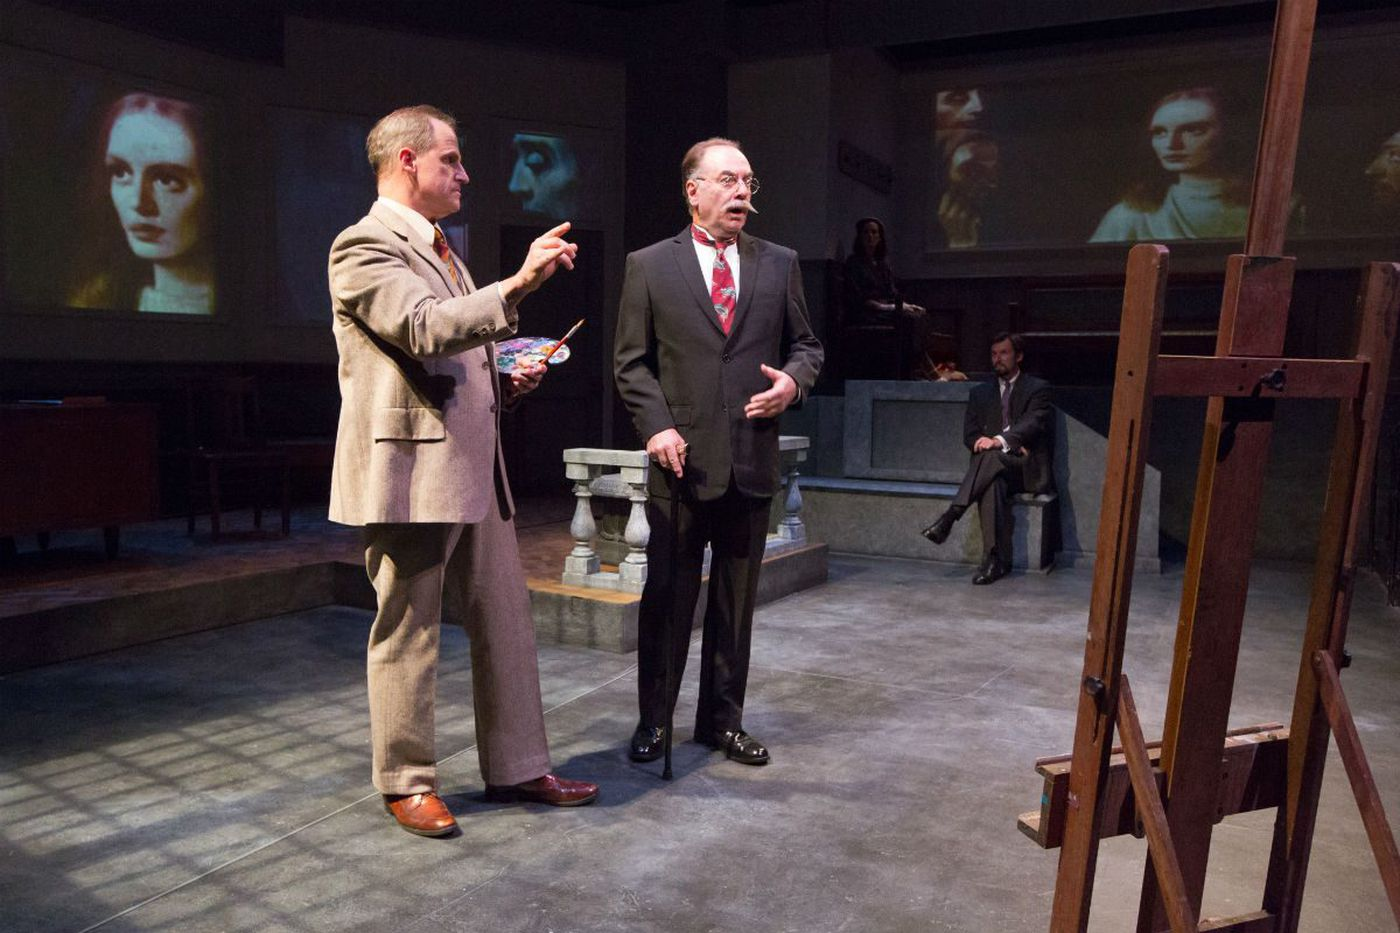 'The Craftsman' at Lantern Theater: Vermeer, worth, fakery, and truth